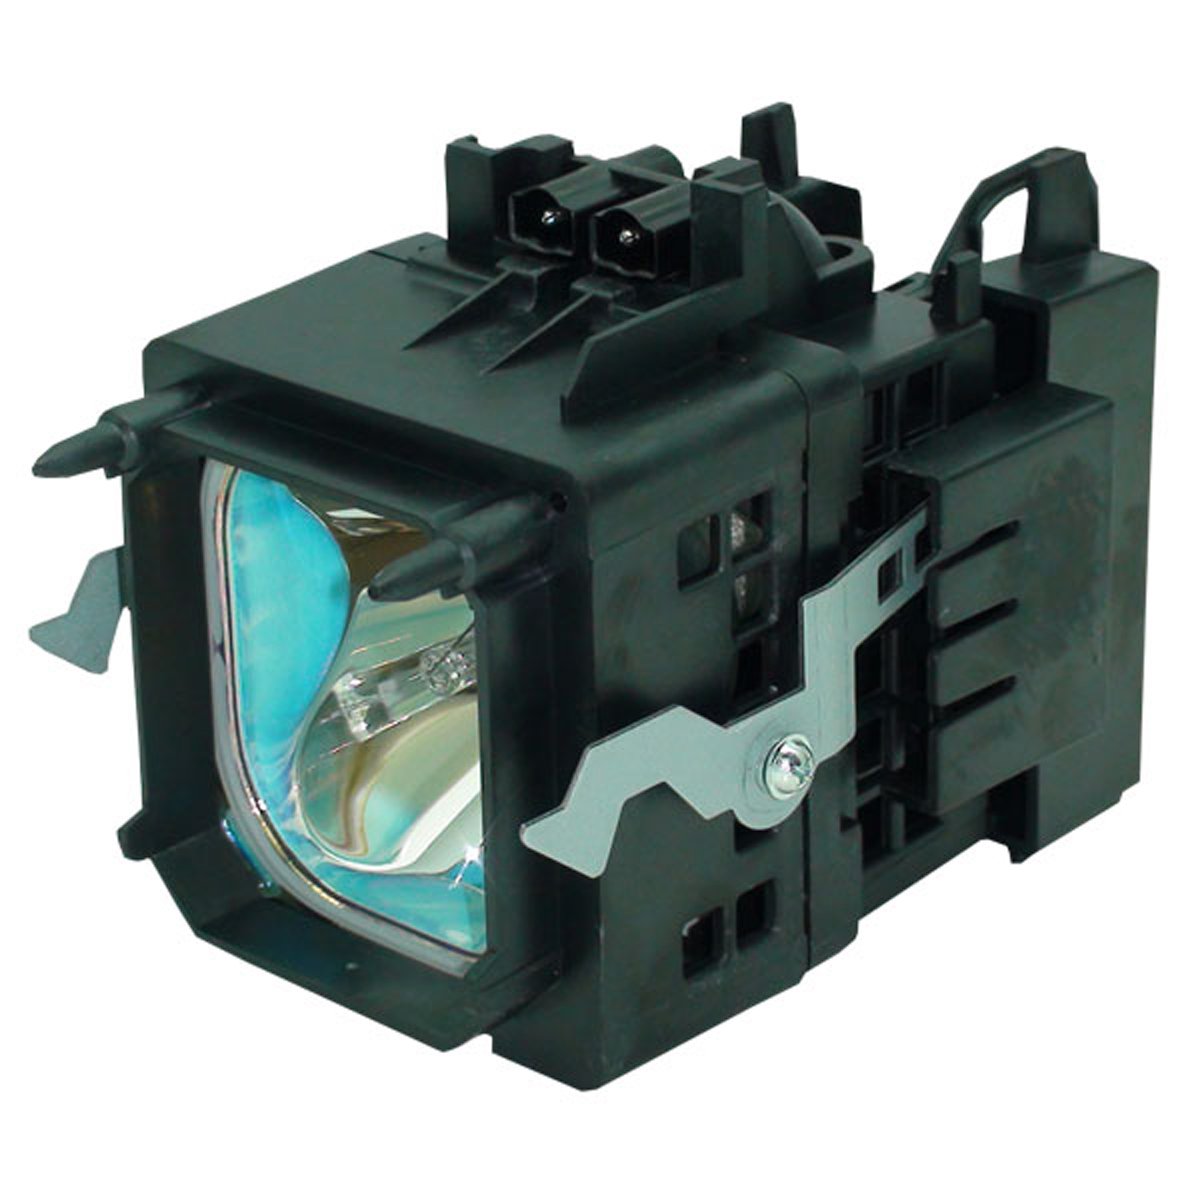 Osram Neolux Lamp Housing For Sony XL5100E Projection TV